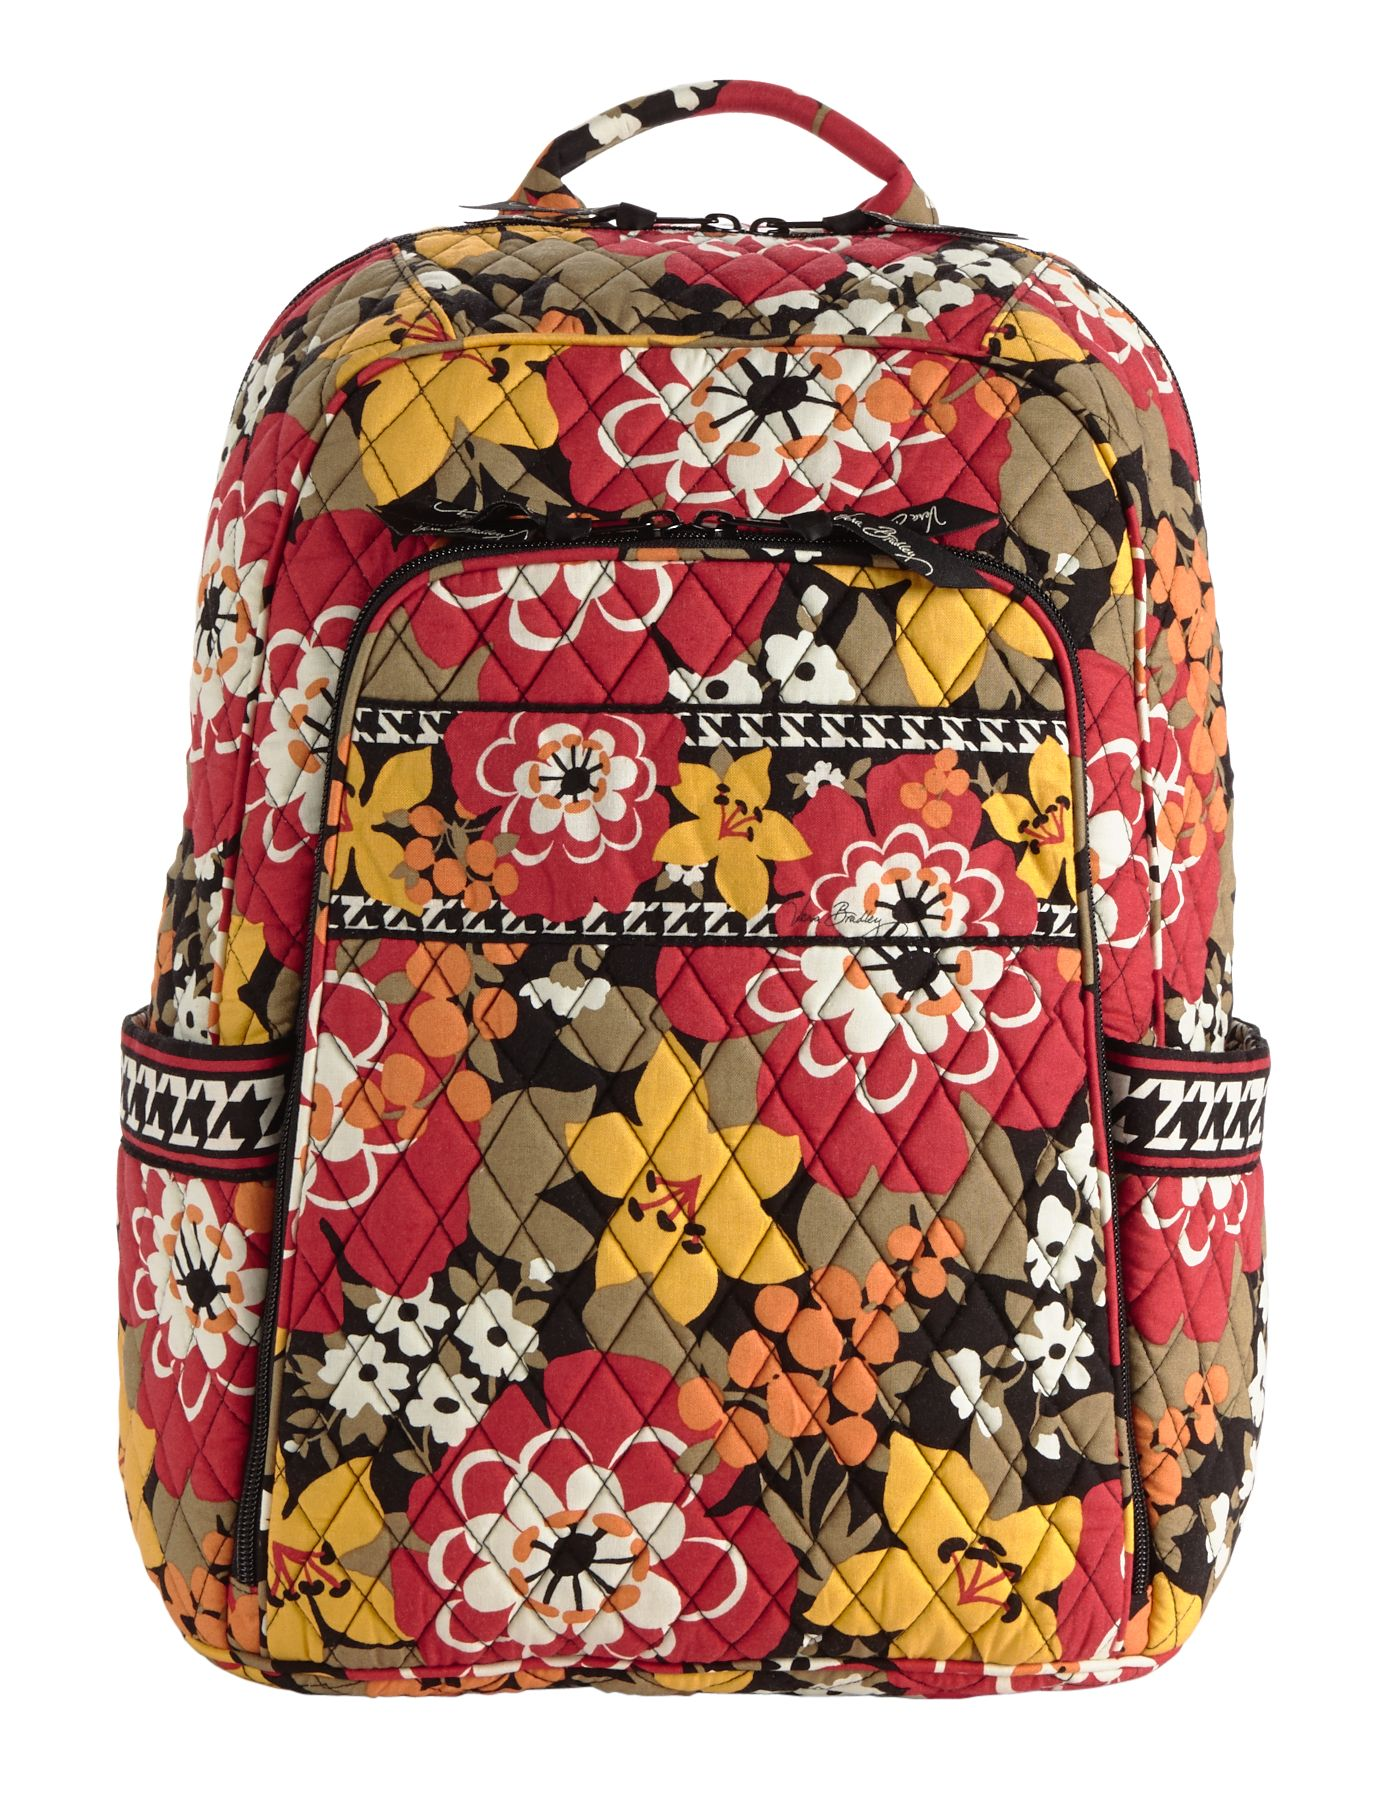 Vera Bradley Extra 20% off Sale Items, This Weekend Only